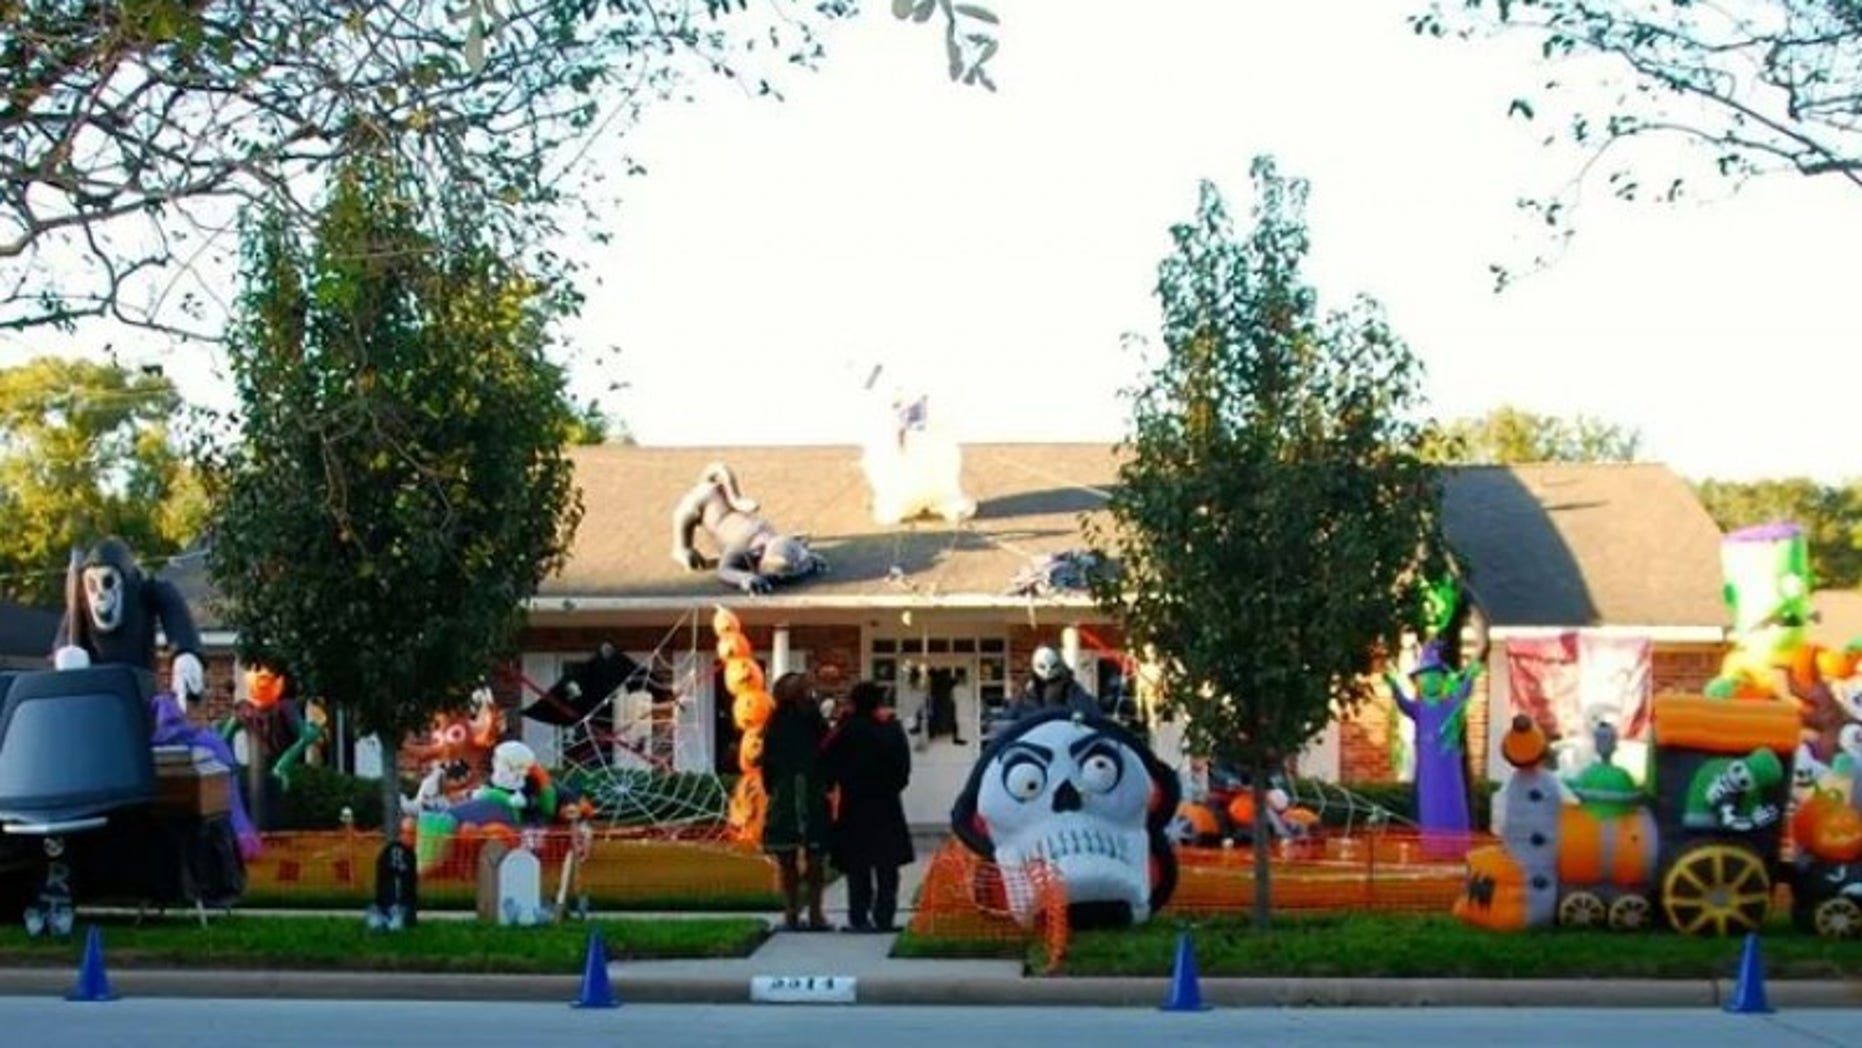 The Mueller's home at Halloween (image: Amy Mueller)